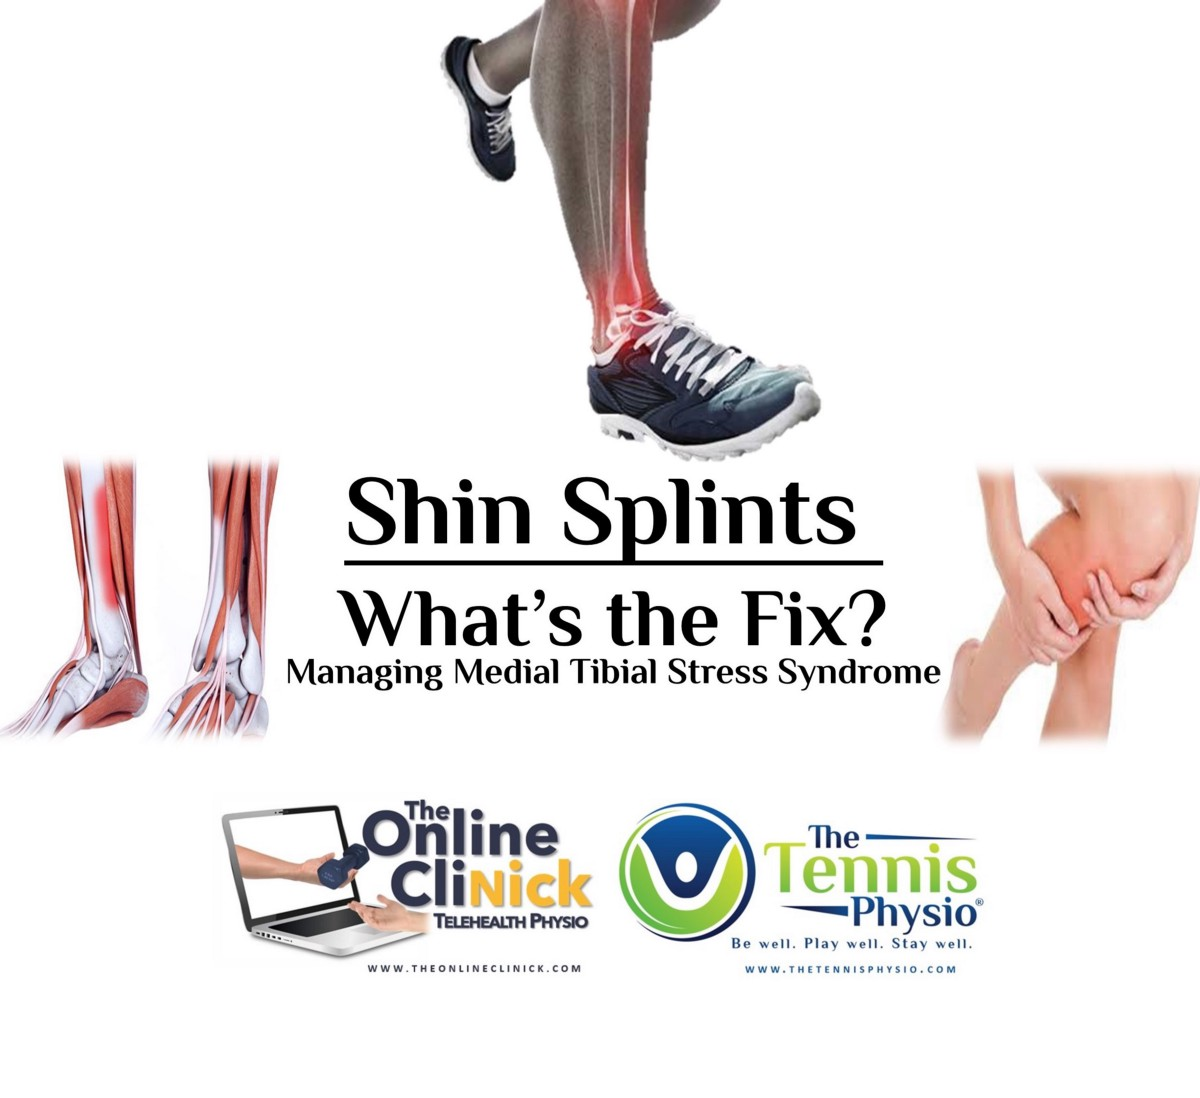 Shin Splints — What's the Fix? (Managing Medial Tibial Stress Syndrome) |  by The Tennis Physio | Medium